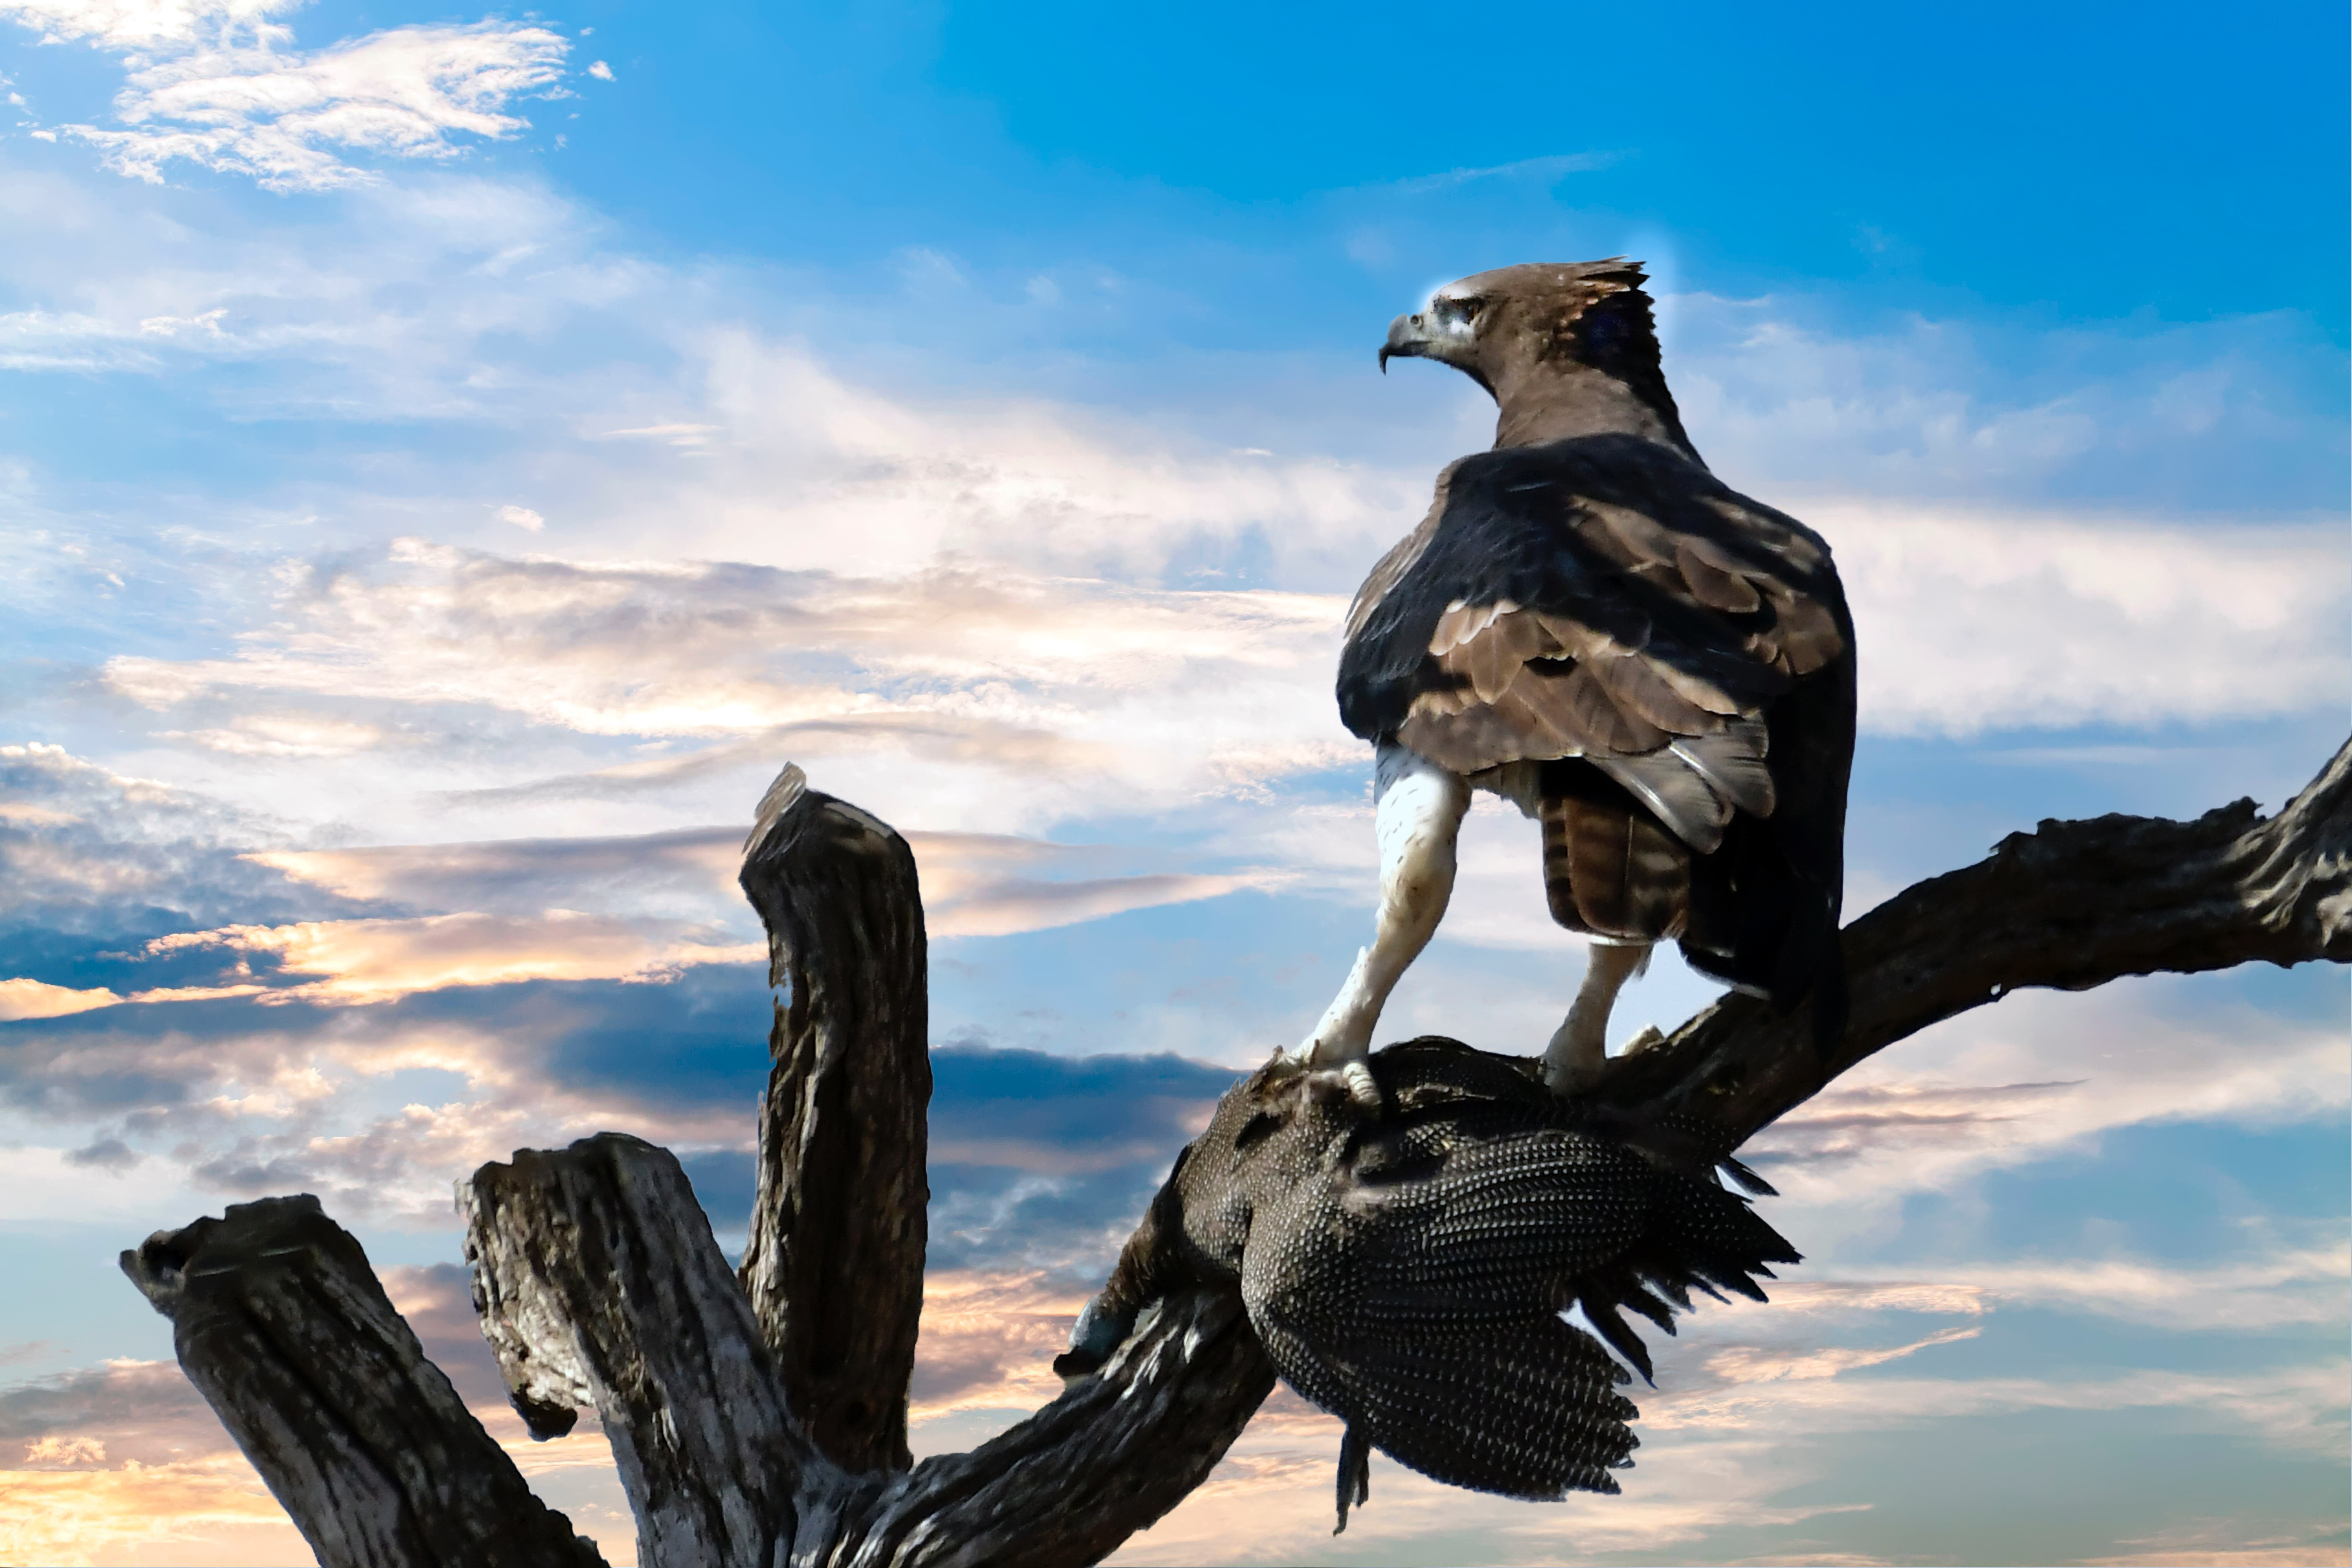 Eagle Perched on Tree Branch, Animal, Landscape, Wildlife, Wild bird, HQ Photo